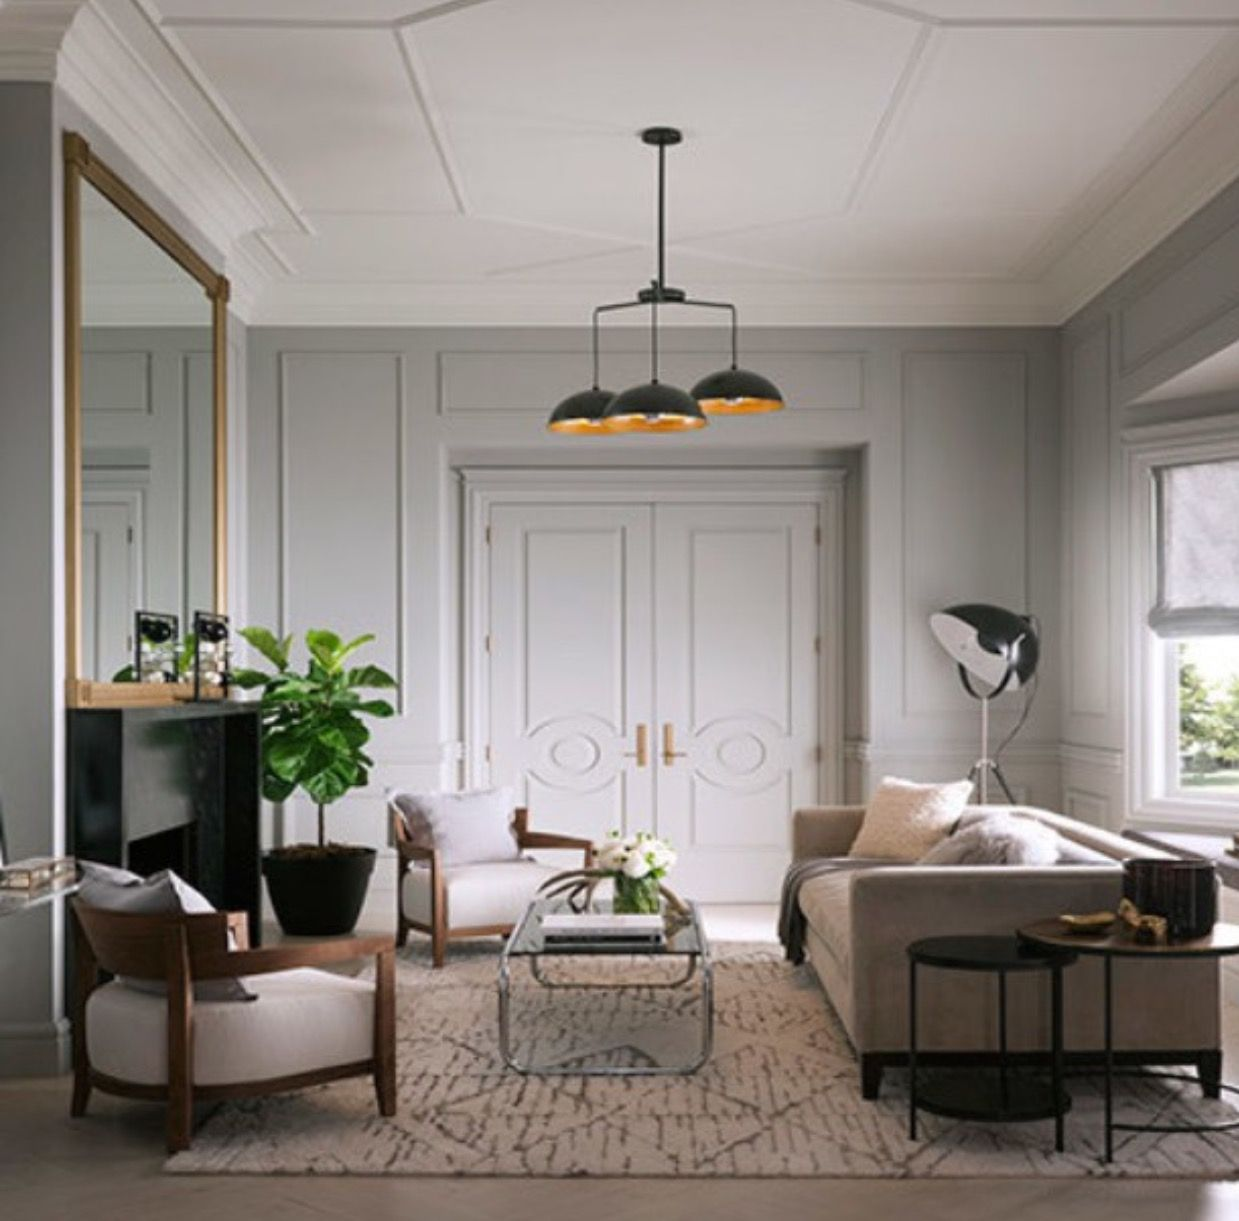 Benjamin Moore Colors For Your Living Room Decor: Benjamin Moore Coventry Gray